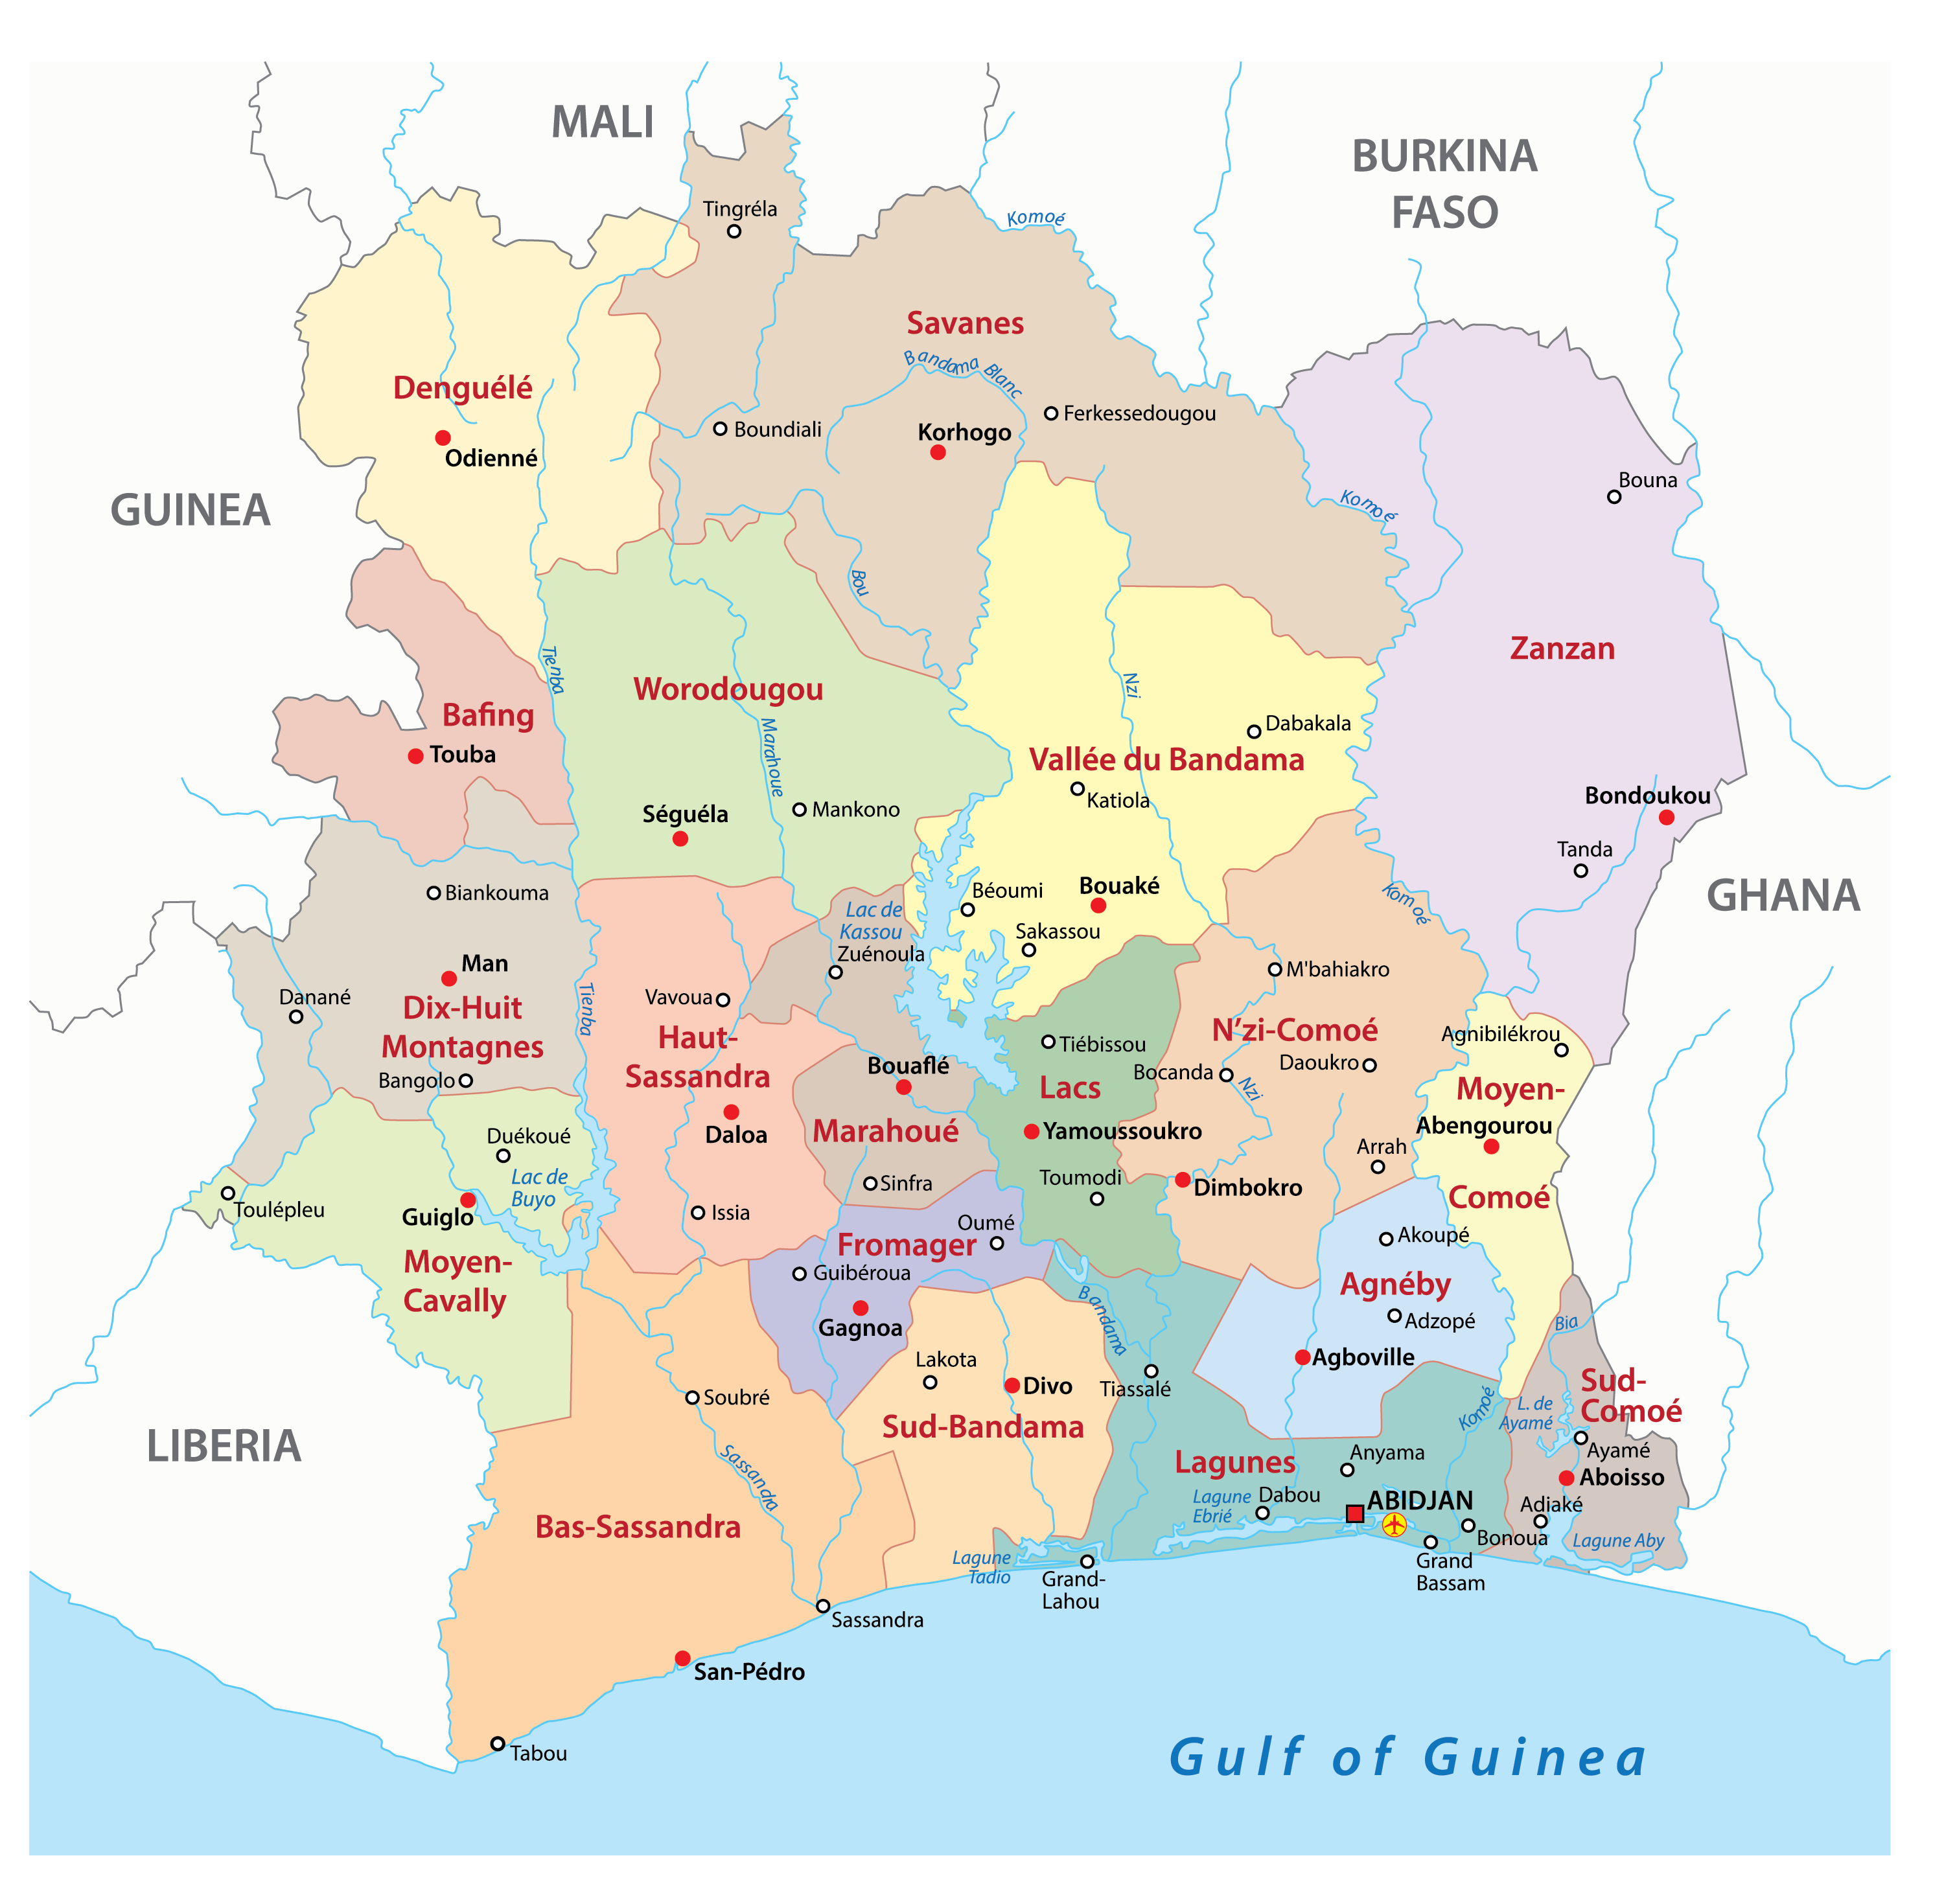 Political Map of Ivory Coast displaying the 14 districts including the capital city of Abidjan.